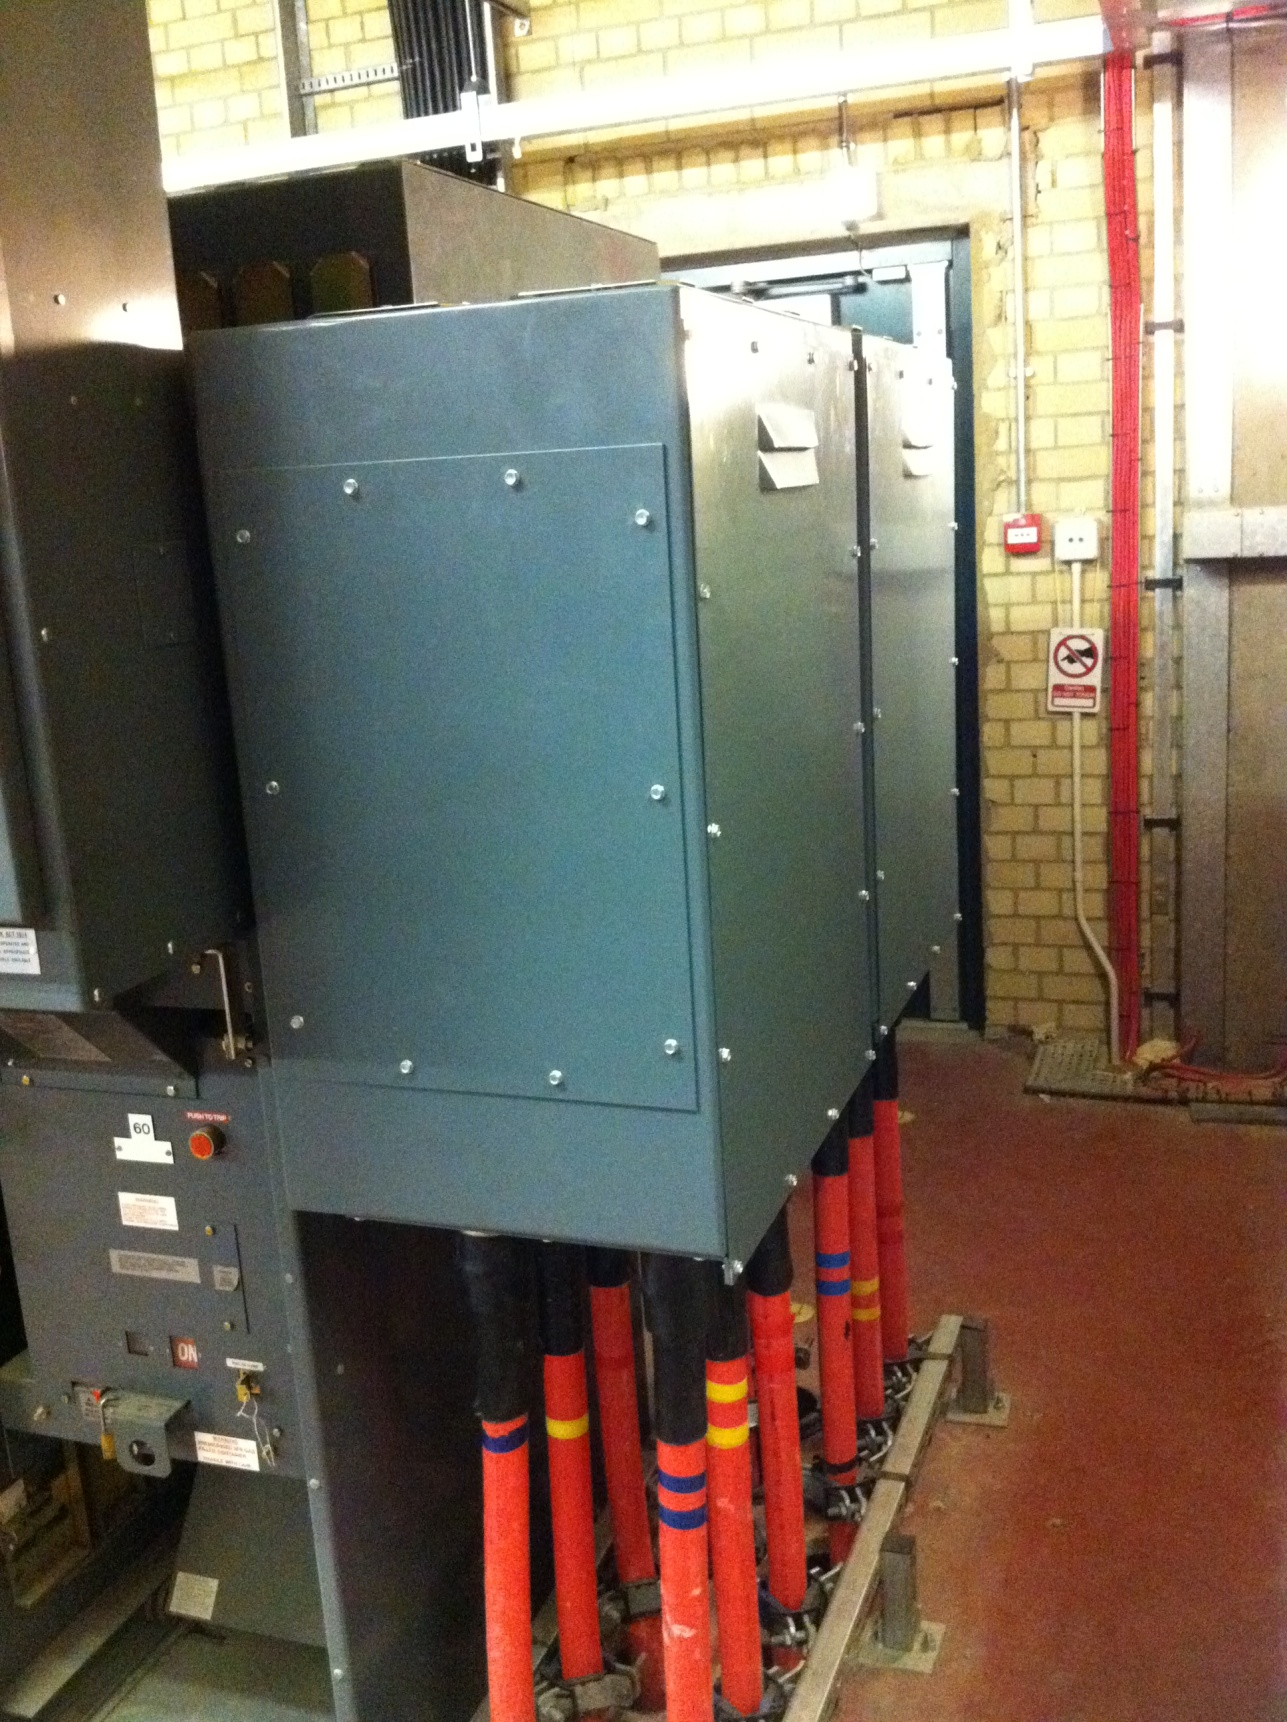 UK Power Networks - Busend Cable Boxes